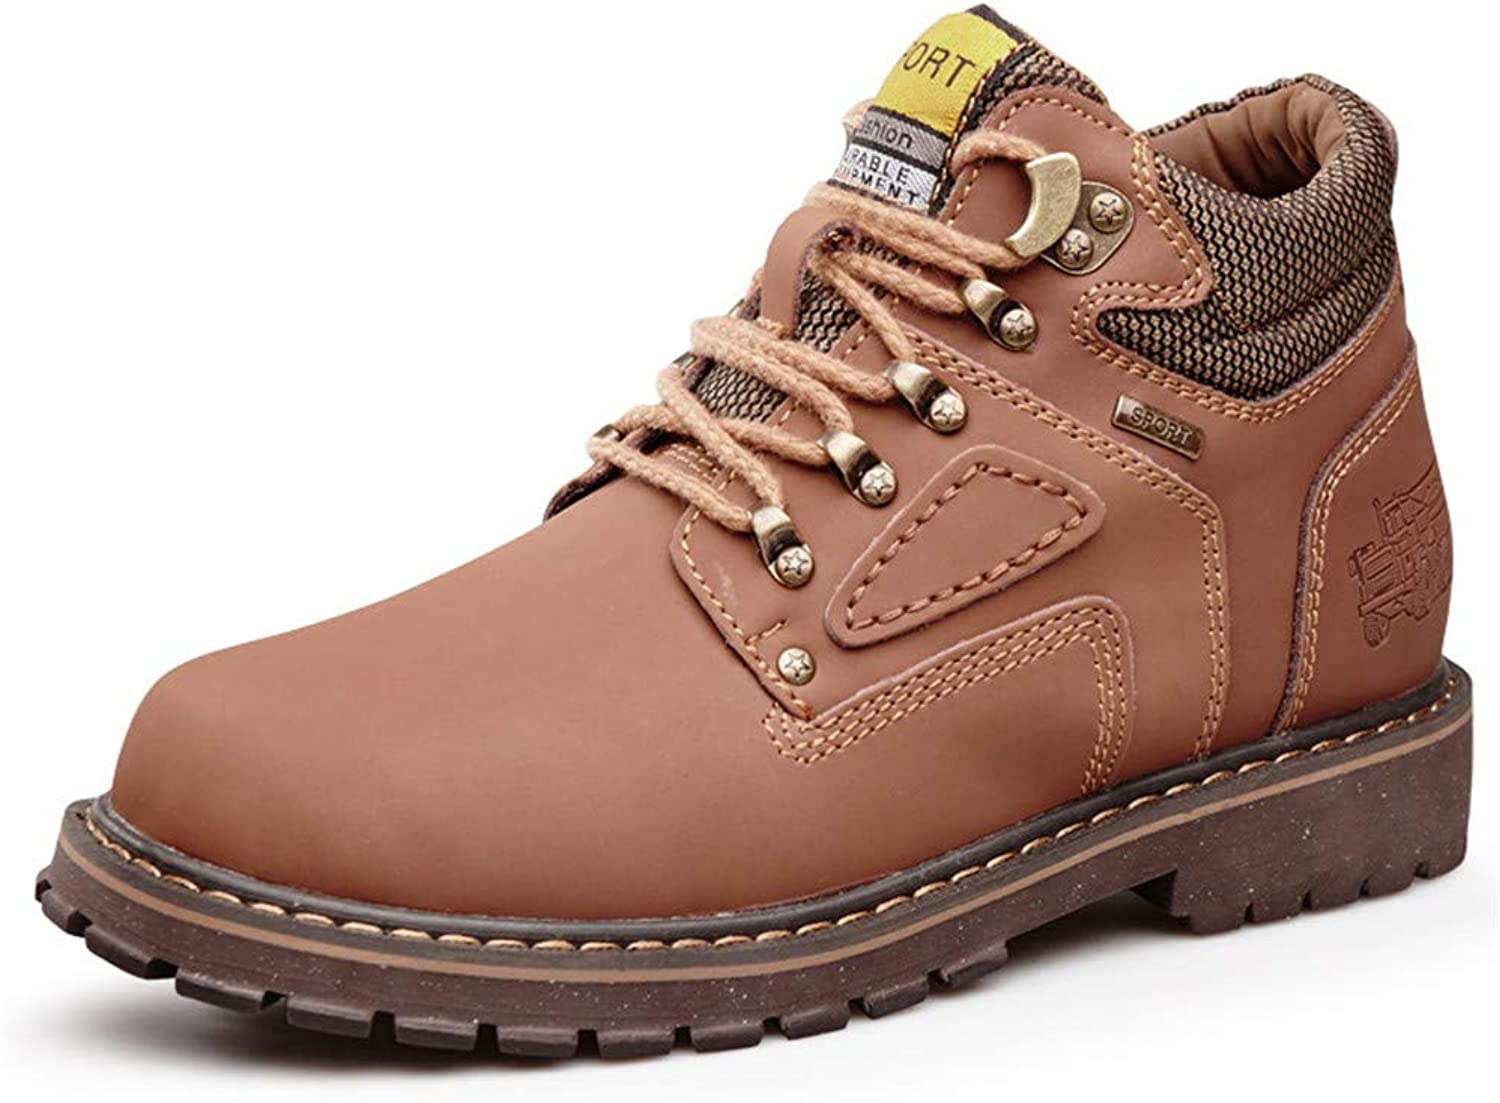 Fashion Boots,Casual shoes Men's Stylish Comfortable Ankle Boots Casual Classic Round Top High Top Cotton Warm Outsole Work shoes (Conventional Optional) Personality shoes, Warm Boots